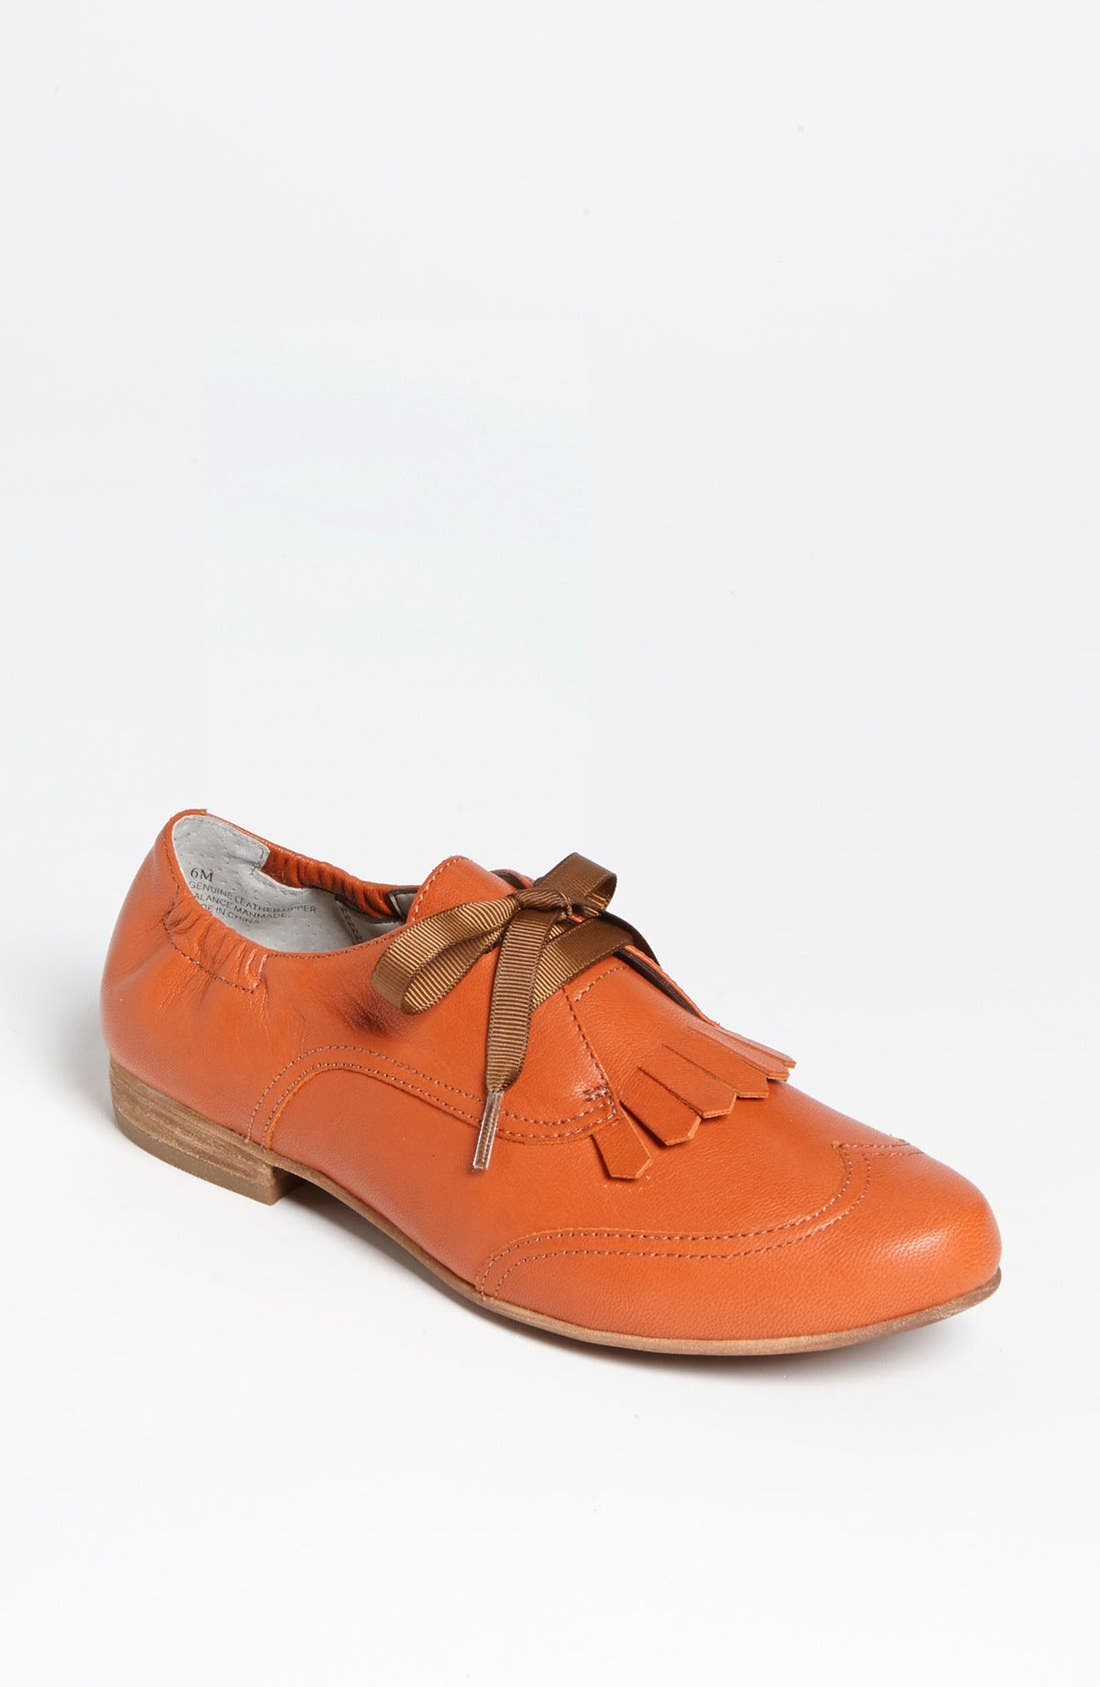 Alternate Image 1 Selected - Hinge® 'Mason' Kiltie Oxford Flat